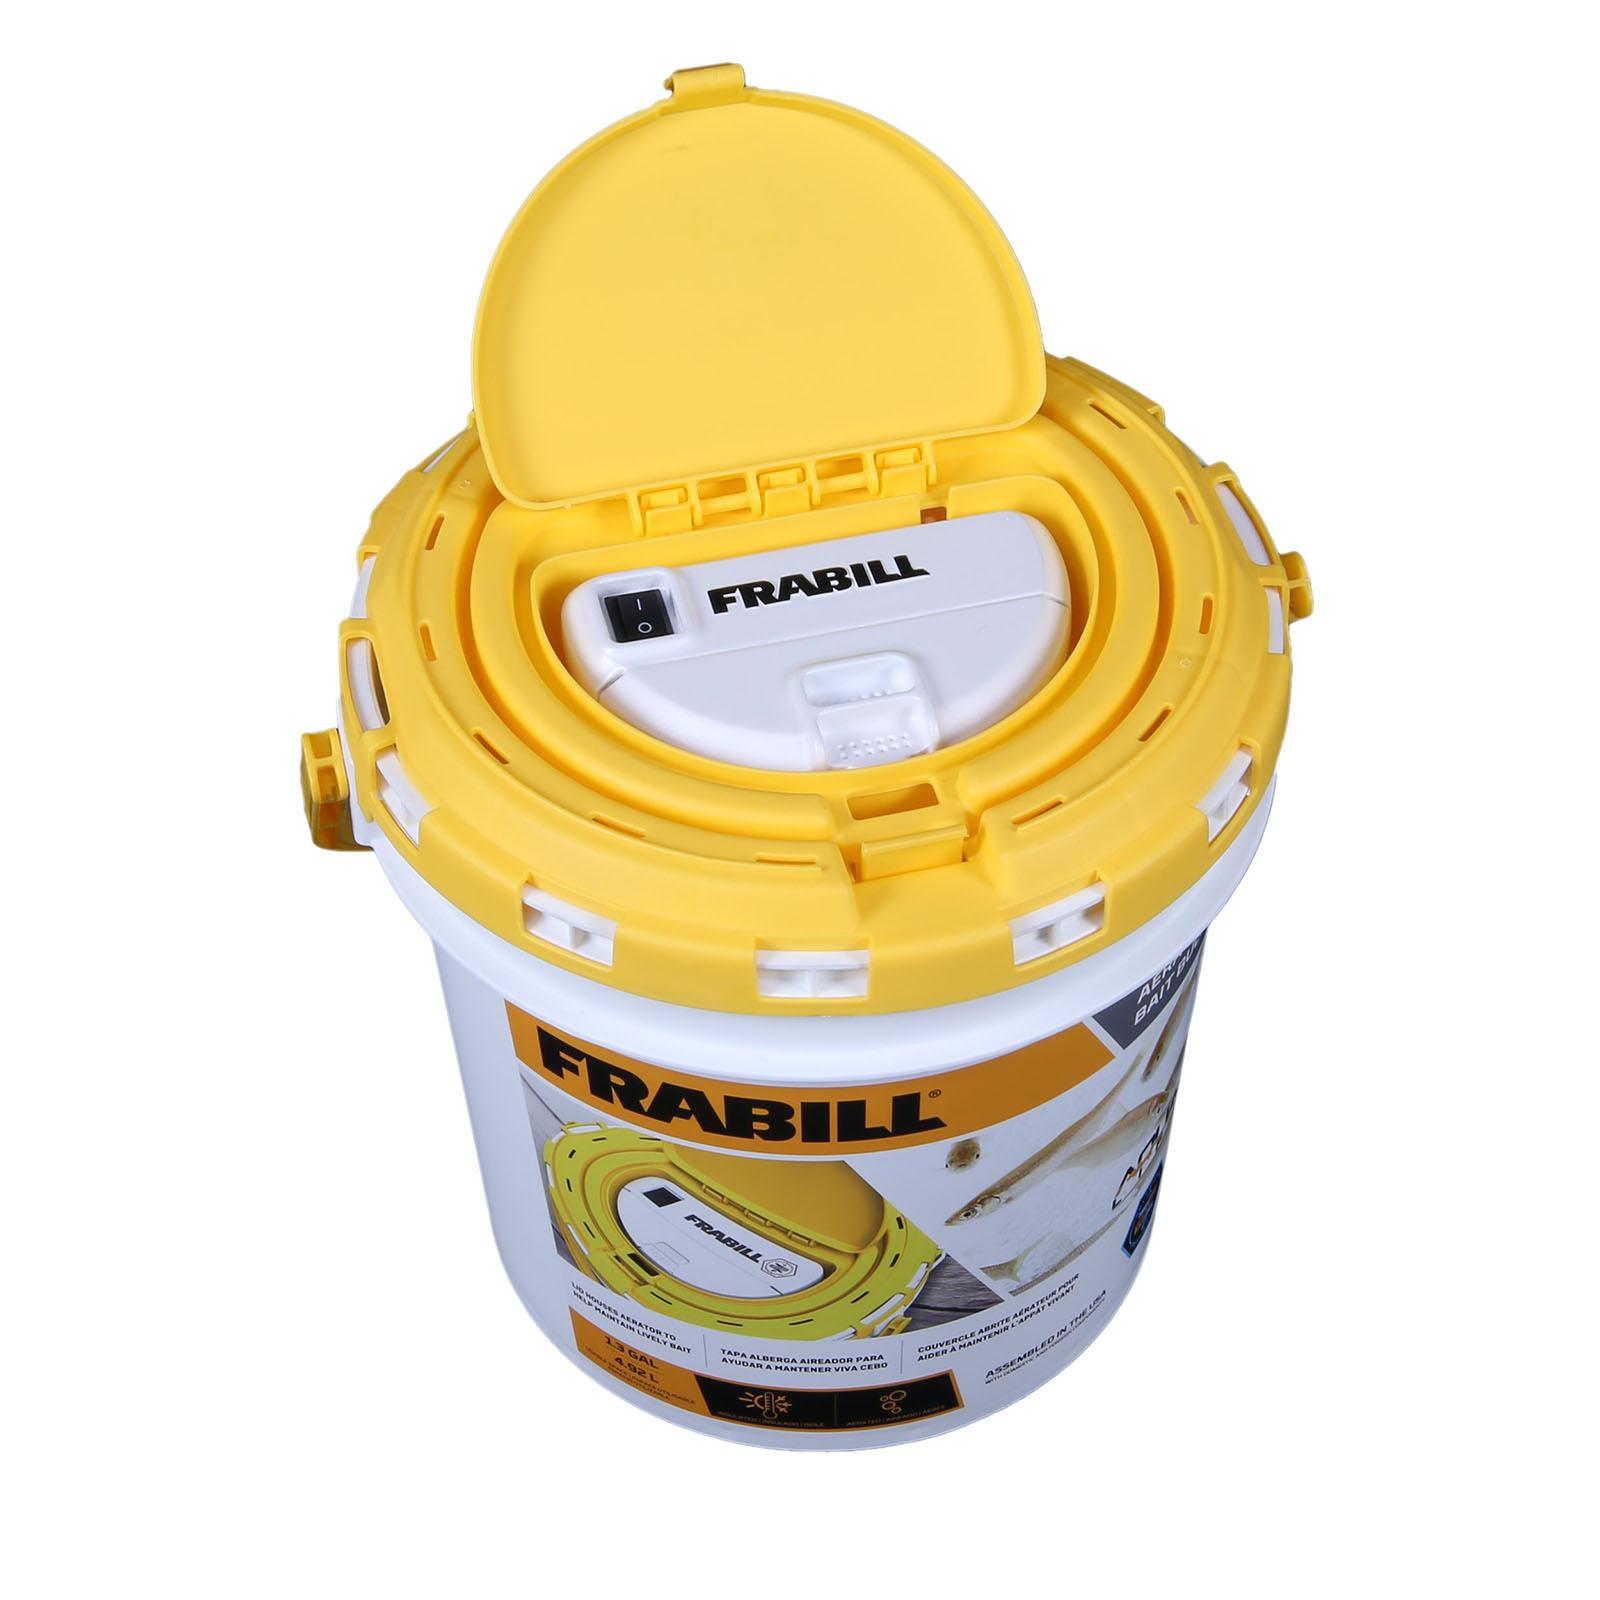 Frabill Insulated Bait Bucket With Aerator Fishusa